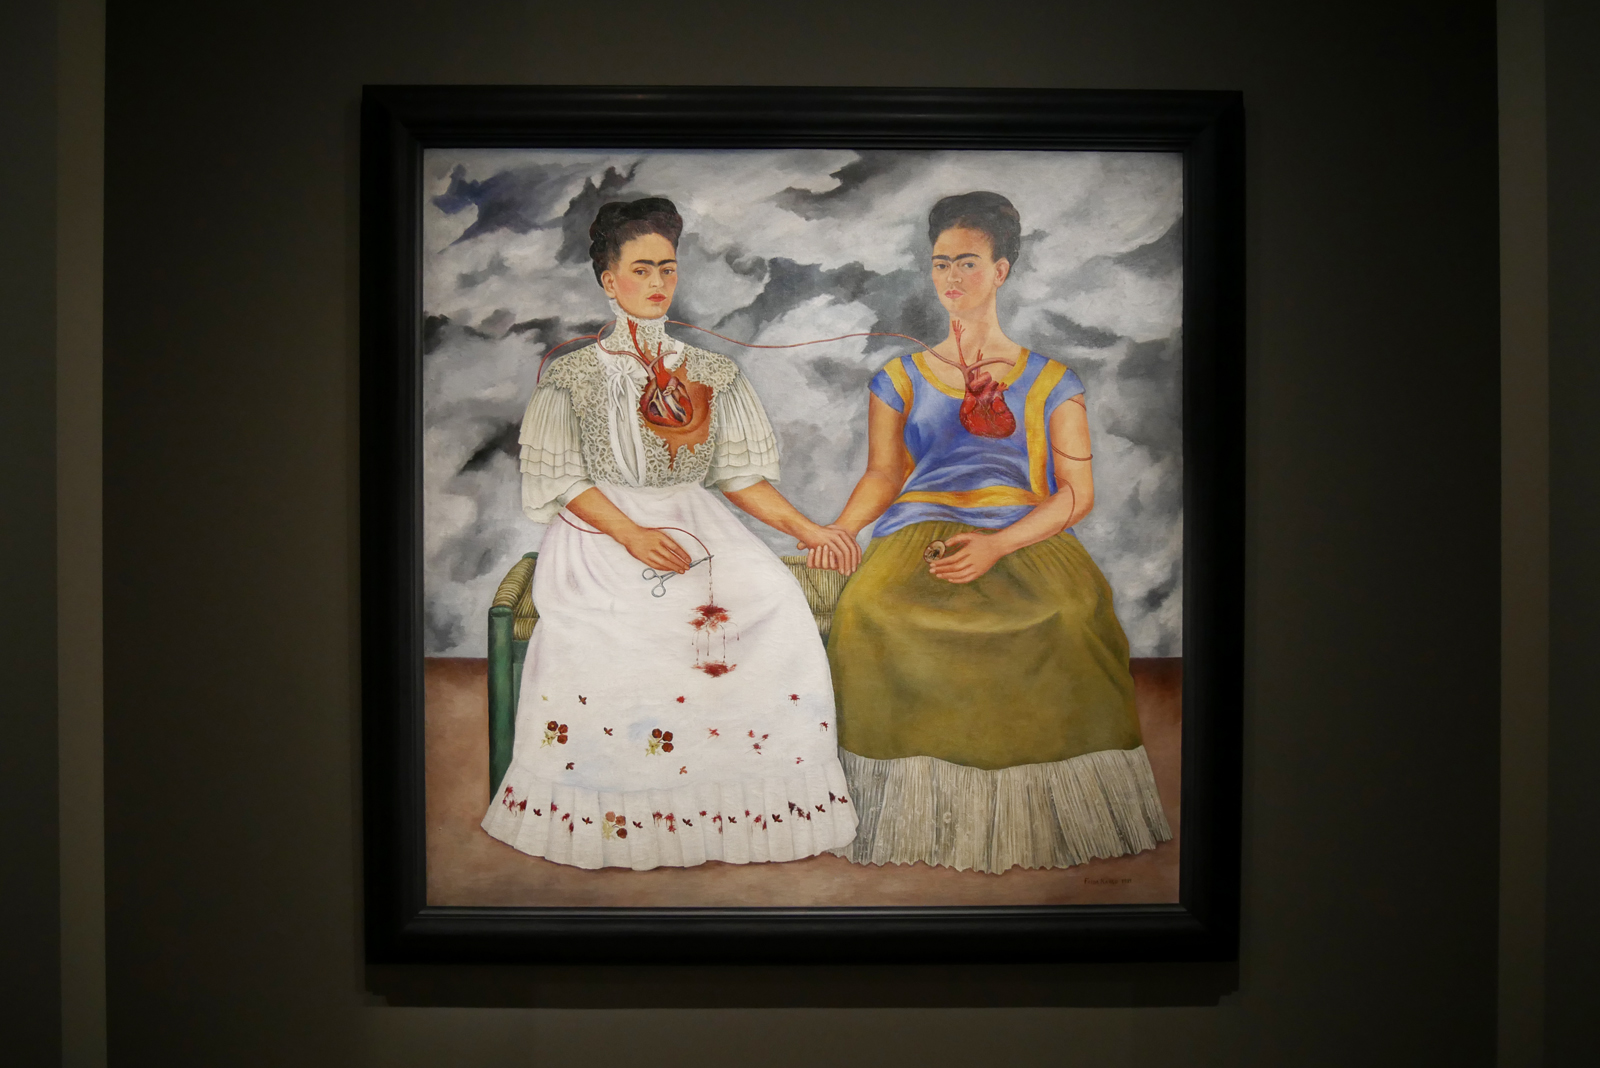 frida-kahlo-les-deux-frida-1939-mexico-inba-museo-de-arte-moderno-exposition-mexique-grand-palais-paris